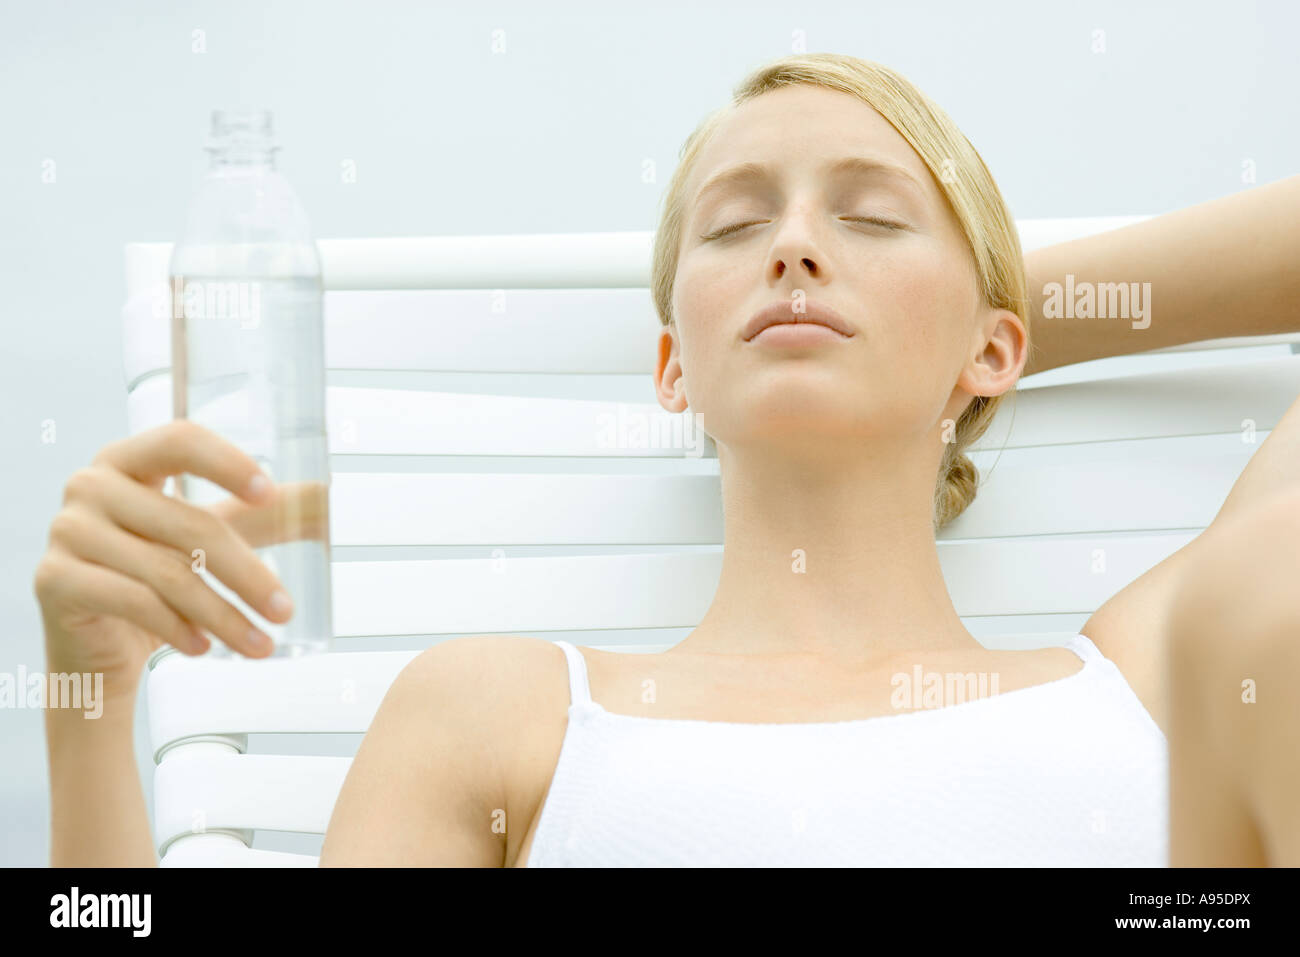 Teenage girl sitting on lounge chair, holding bottle of water, eyes closed - Stock Image